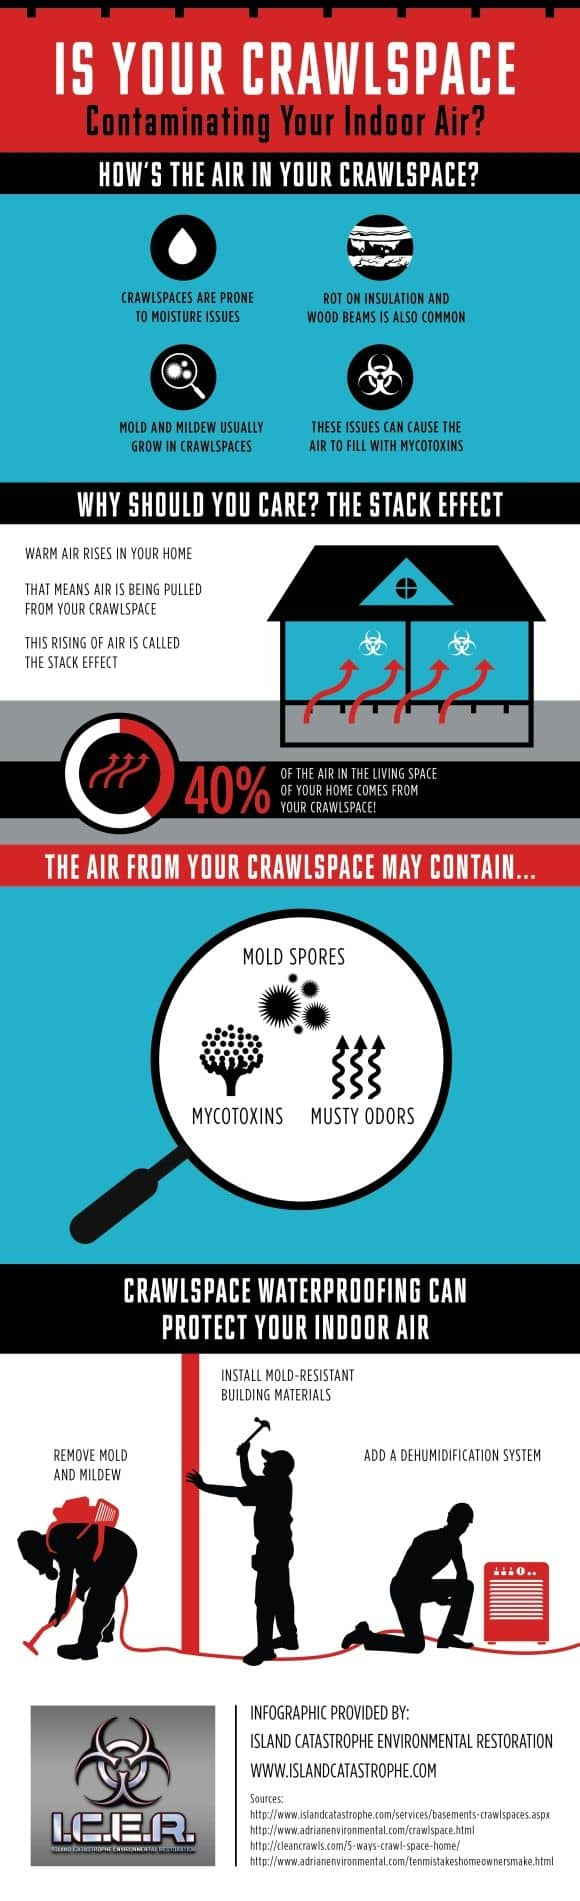 Is My Crawl Space Contaminating My Indoor Air Infographic Summary